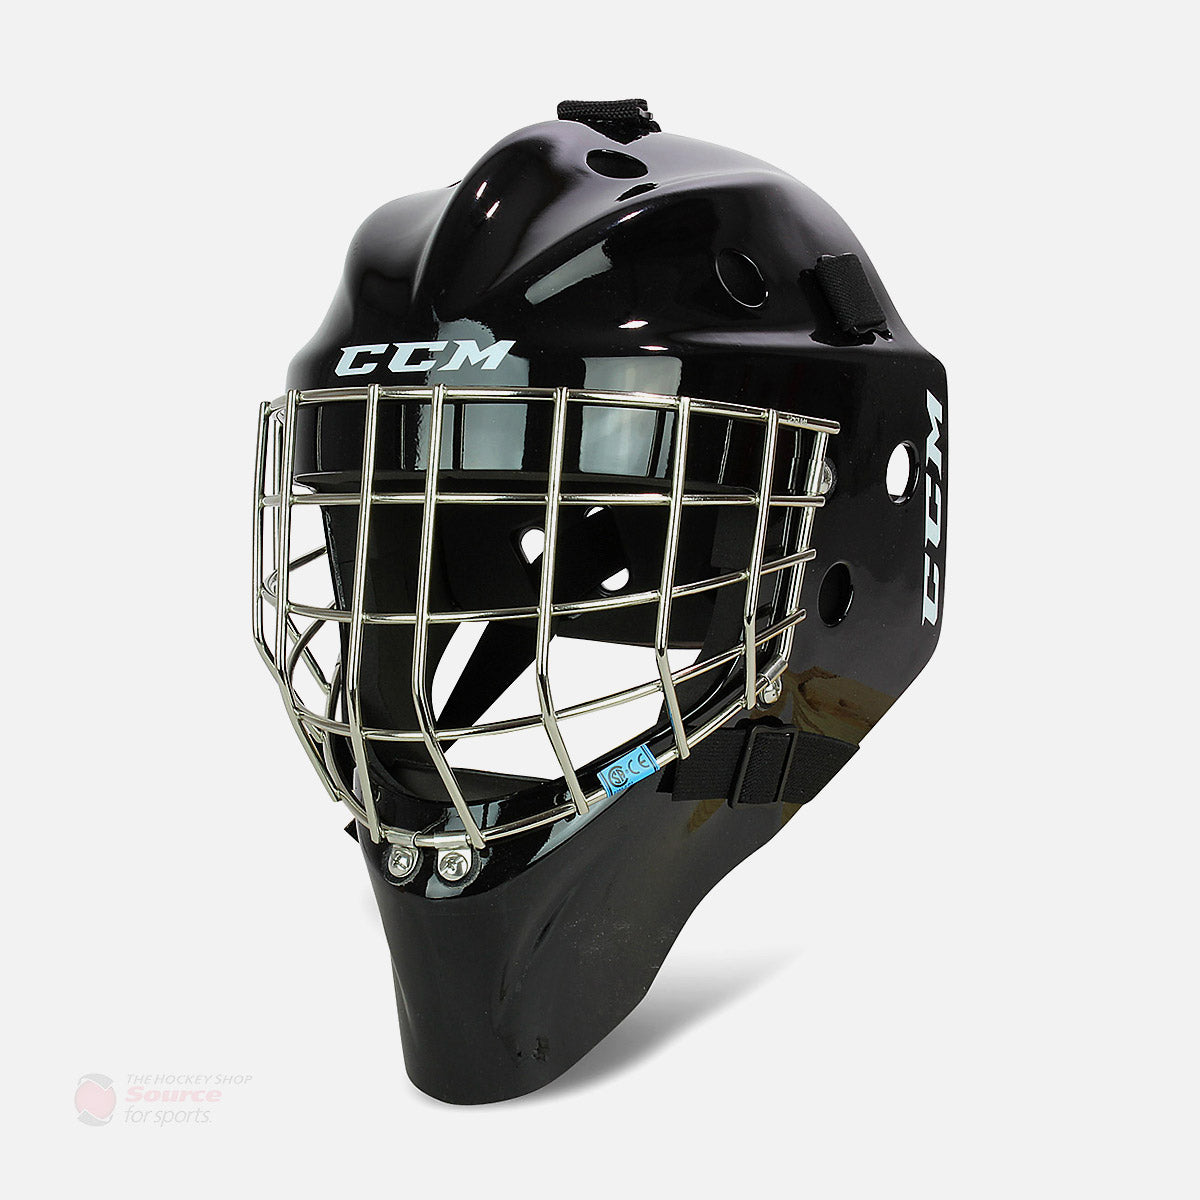 CCM L1.5 Senior Goalie Mask - Black